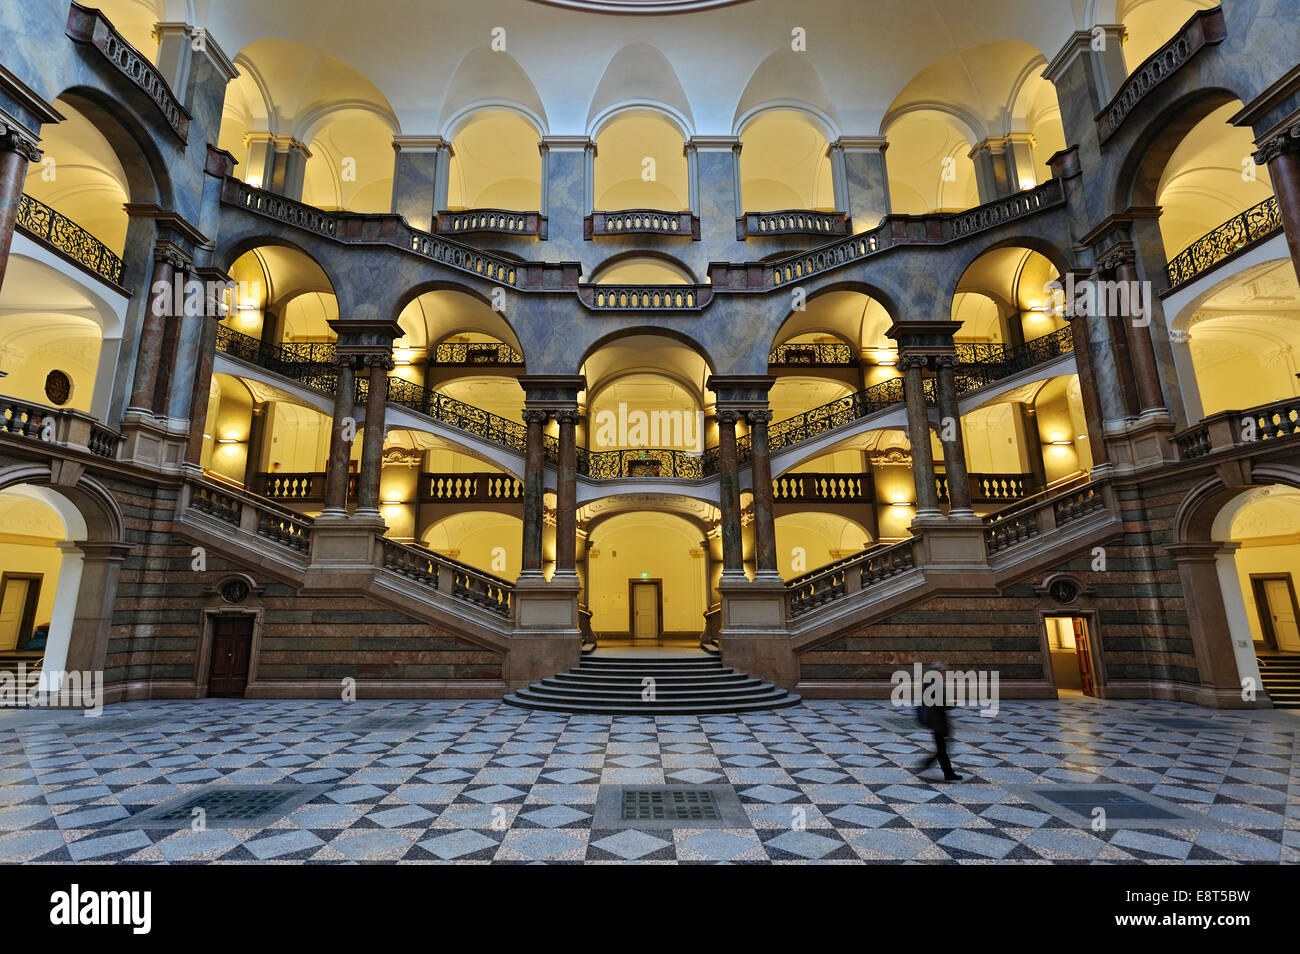 Atrium and staircase, Palace of Justice, Munich, Bavaria, Germany - Stock Image